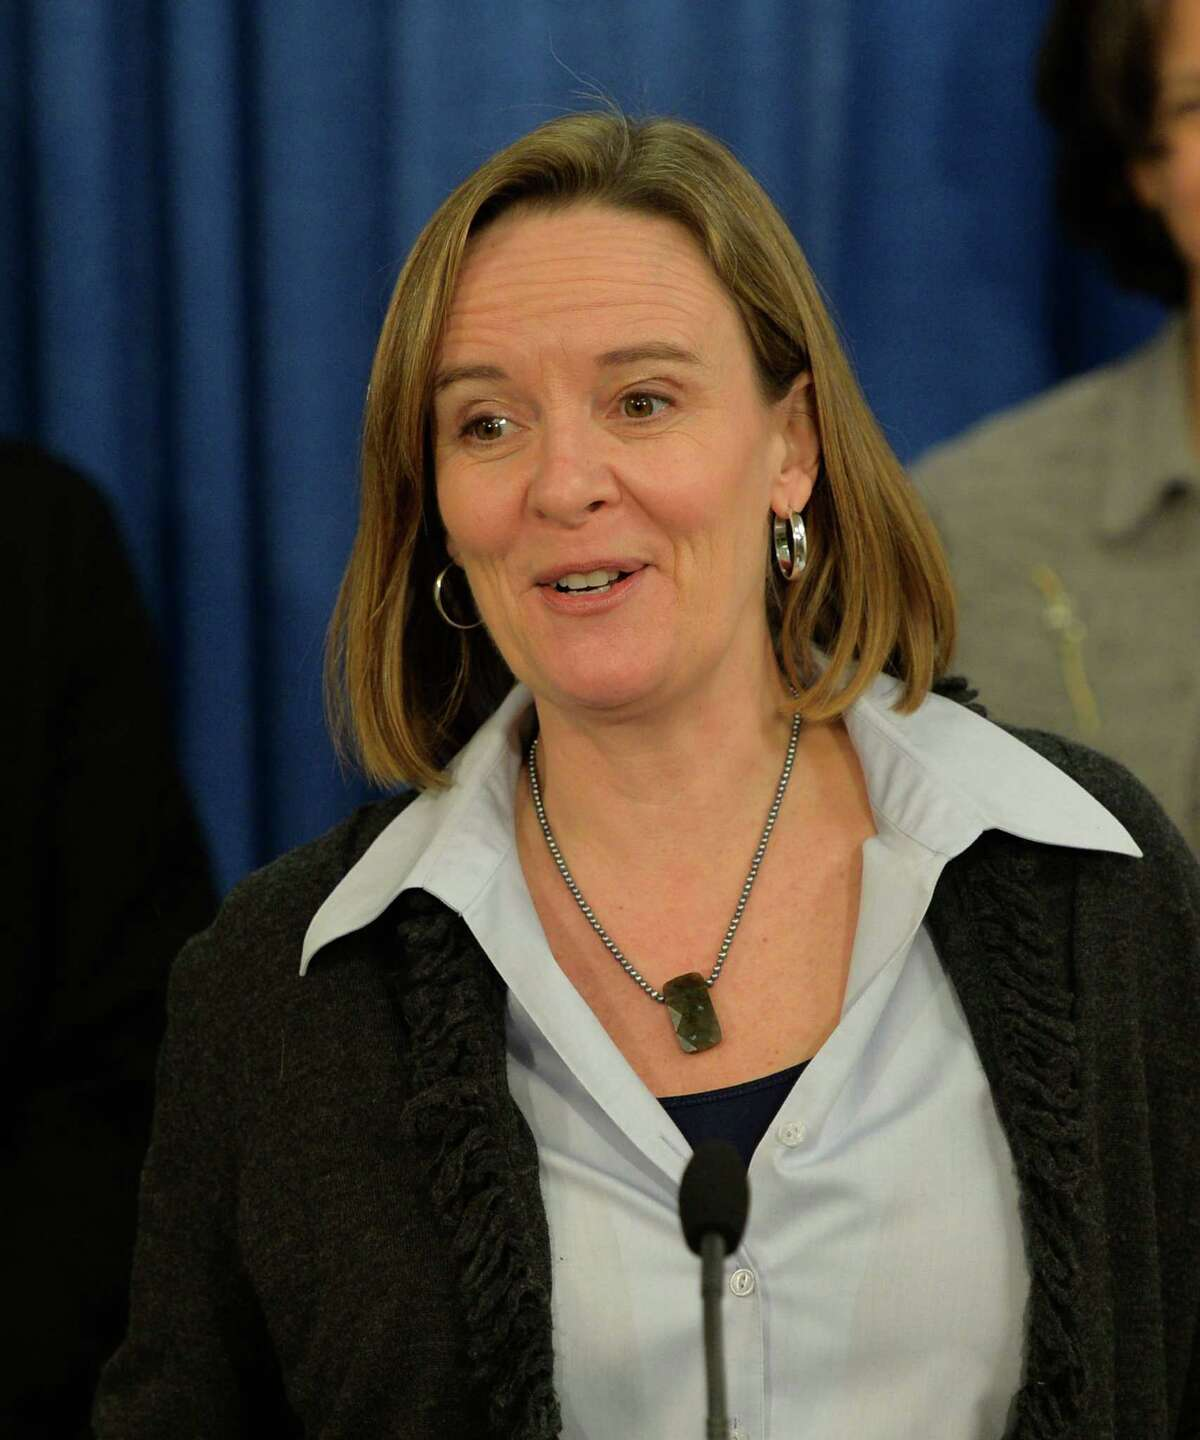 Kate Breslin, CEO of the Schuyler Center for Analysis & Advocacy, is joined by members of Health Care for All New York (HCFANY) during a press conference on Monday, March 3, 2014, at the Legislative Office Building in Albany, N.Y. The allied groups gathered to discuss their campaign to ensure that the Assembly and Senate's bills to be released this week include a package of proposals that would improve health insurance affordability and coverage options available to consumers. (Skip Dickstein / Times Union)